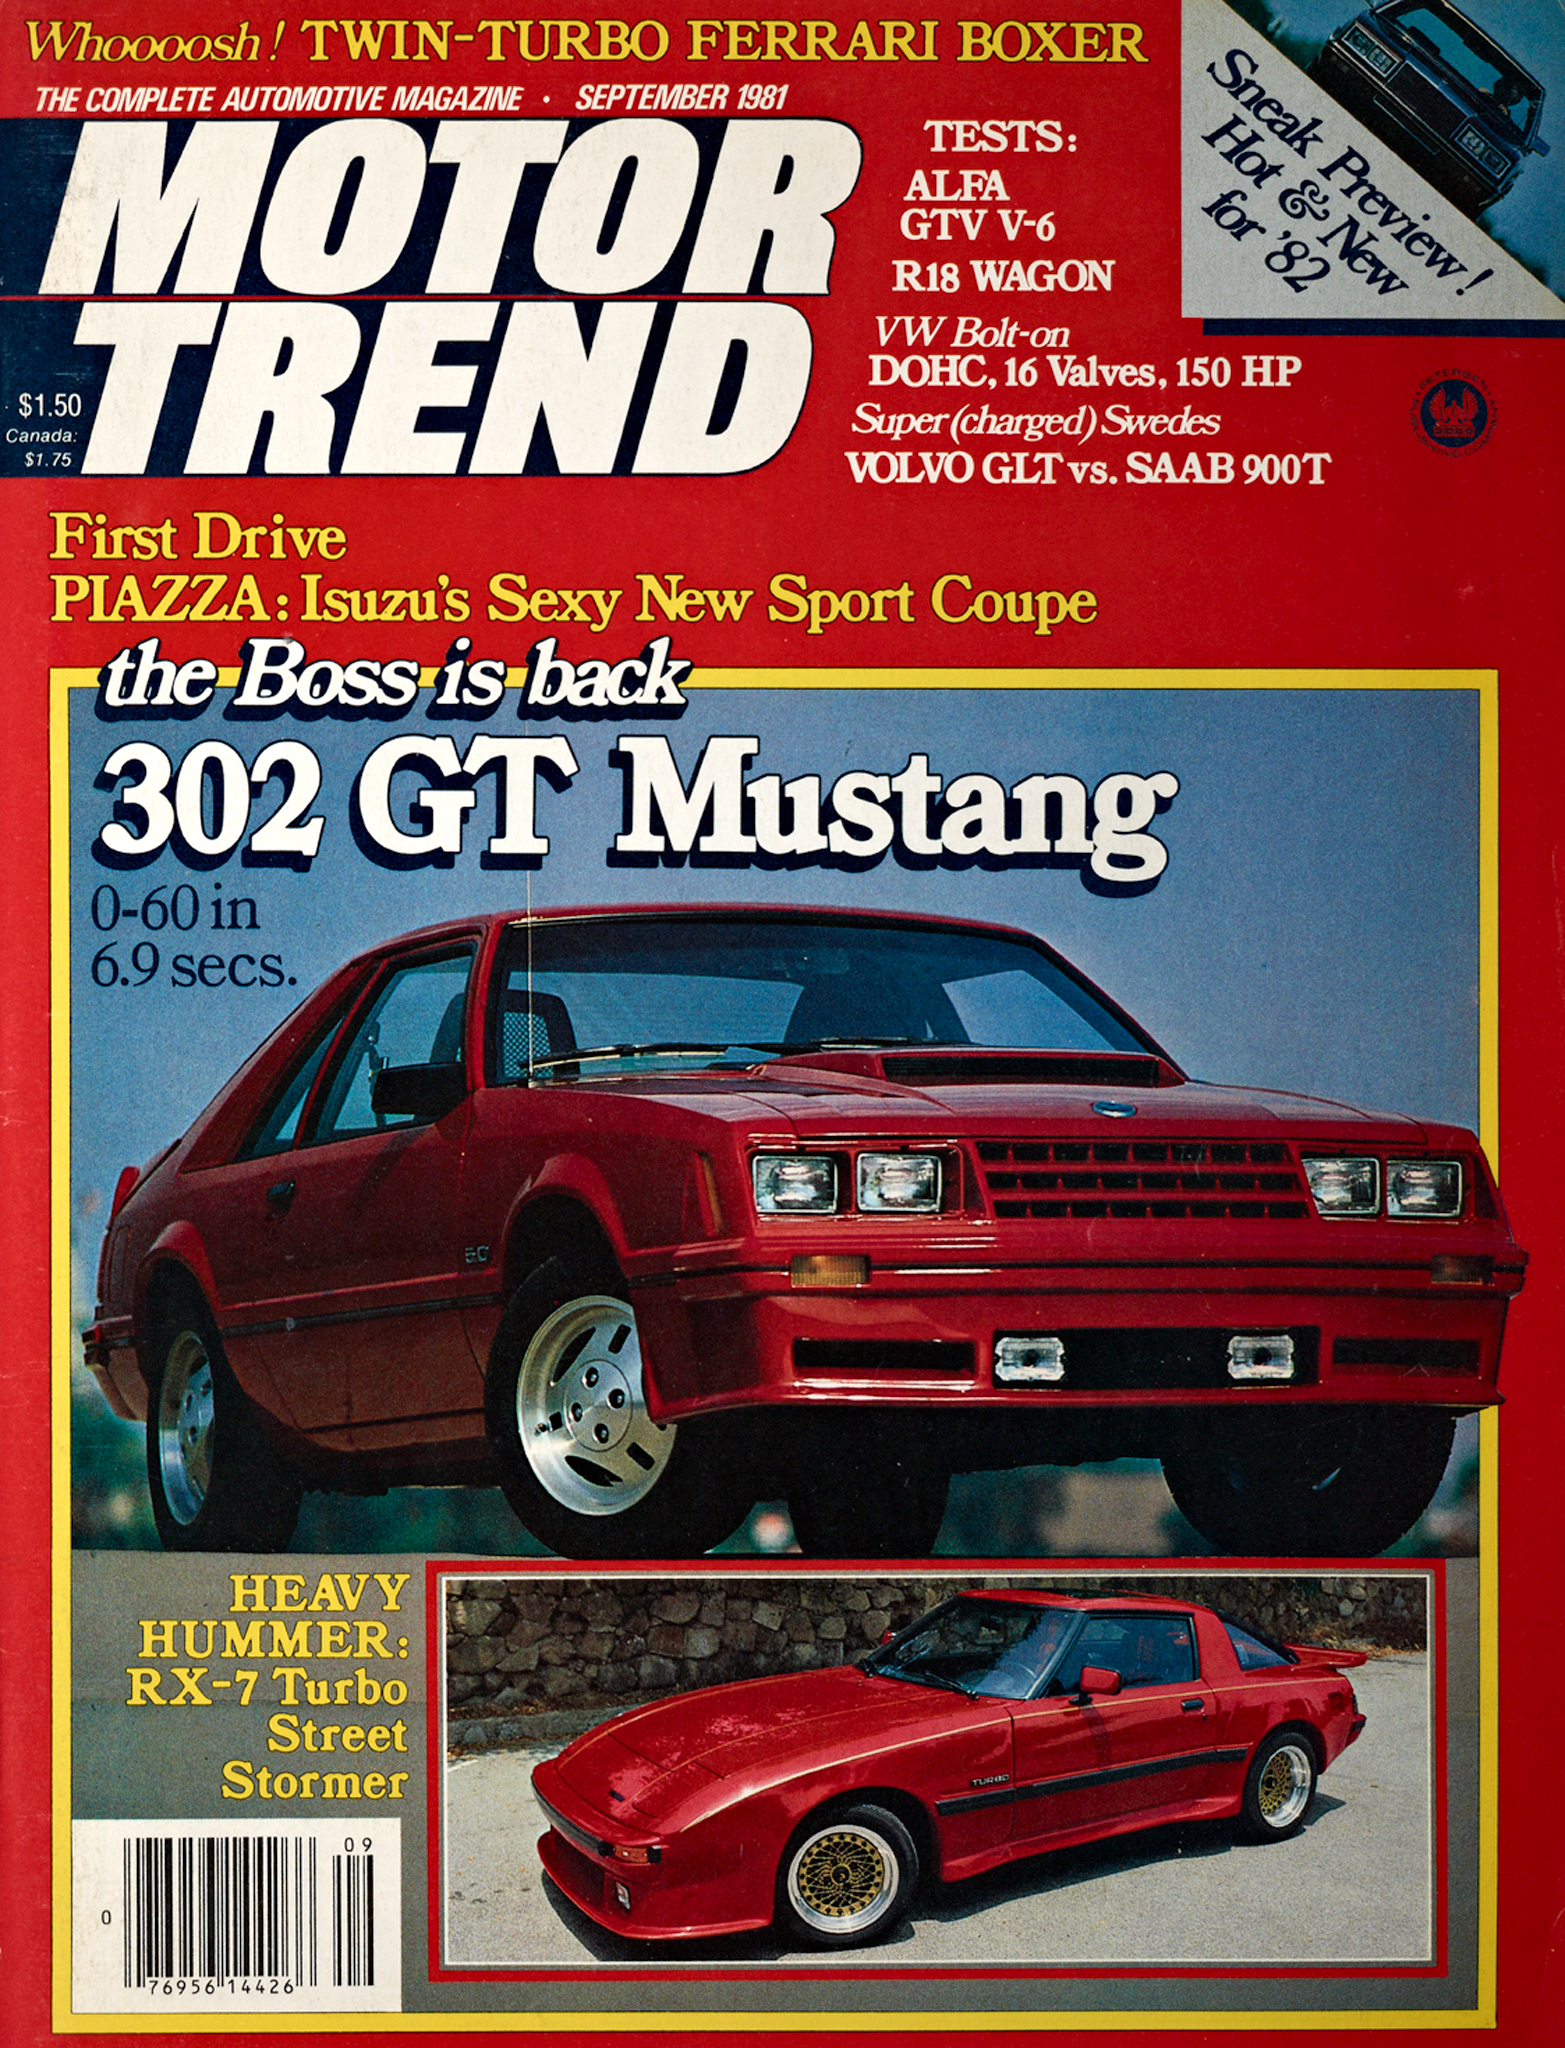 Covered Ford Mustang Motor Trend Covers From 1964 Present 1983 Gt Engine